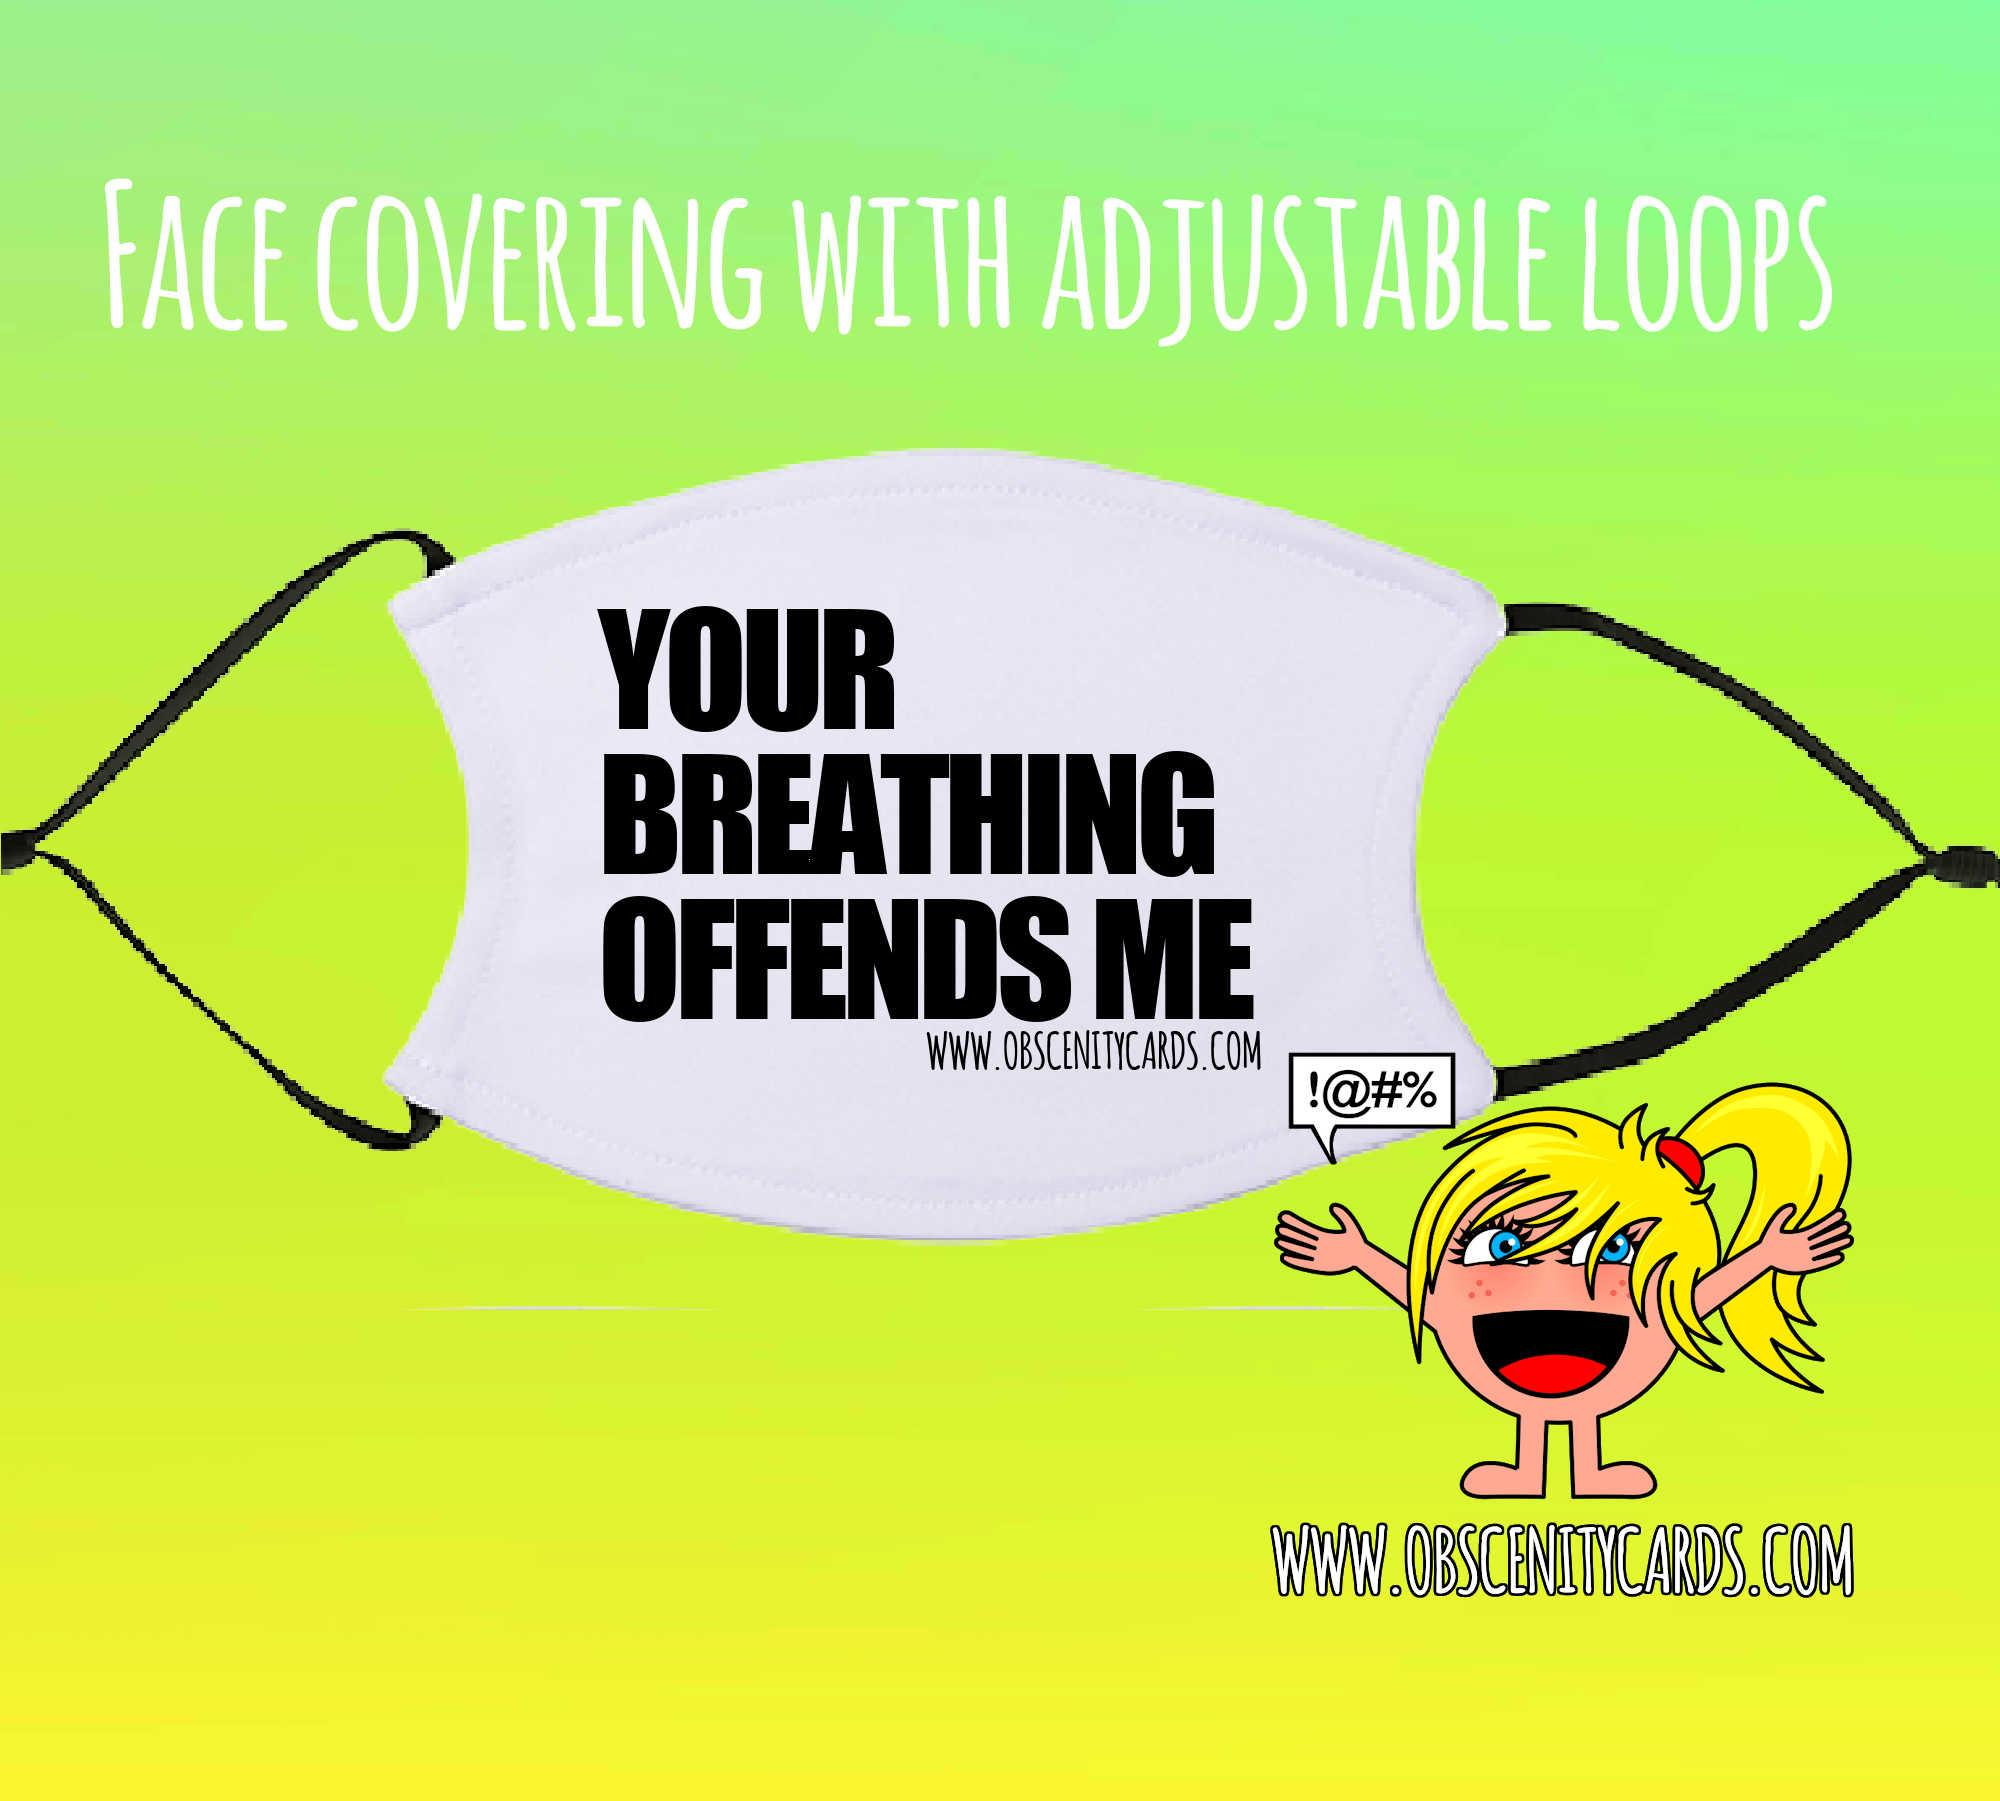 YOUR BREATHING OFFENDS ME COVERING / FACE FASHION / FACIAL COVER